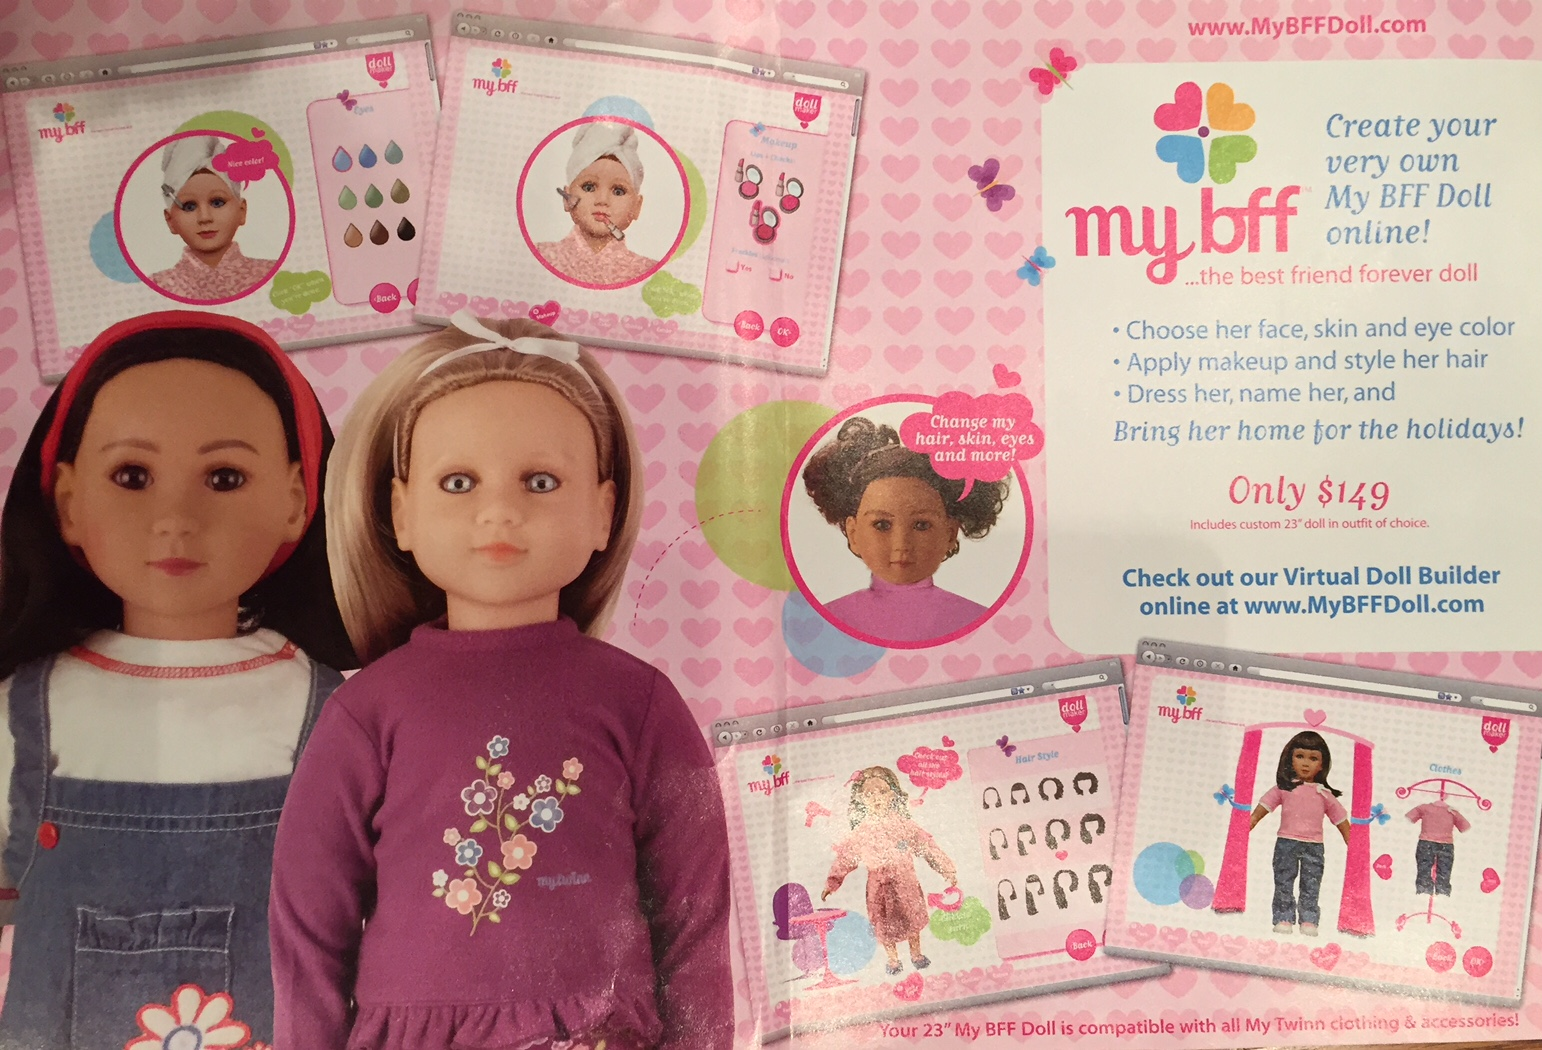 Online eye color changer - A Fun Way Of Seeing The Evolution Of The My Twinn Company Is Through Their Catalog Covers Which Thanks To Retired Denver My Twinn Doll Artist Connie